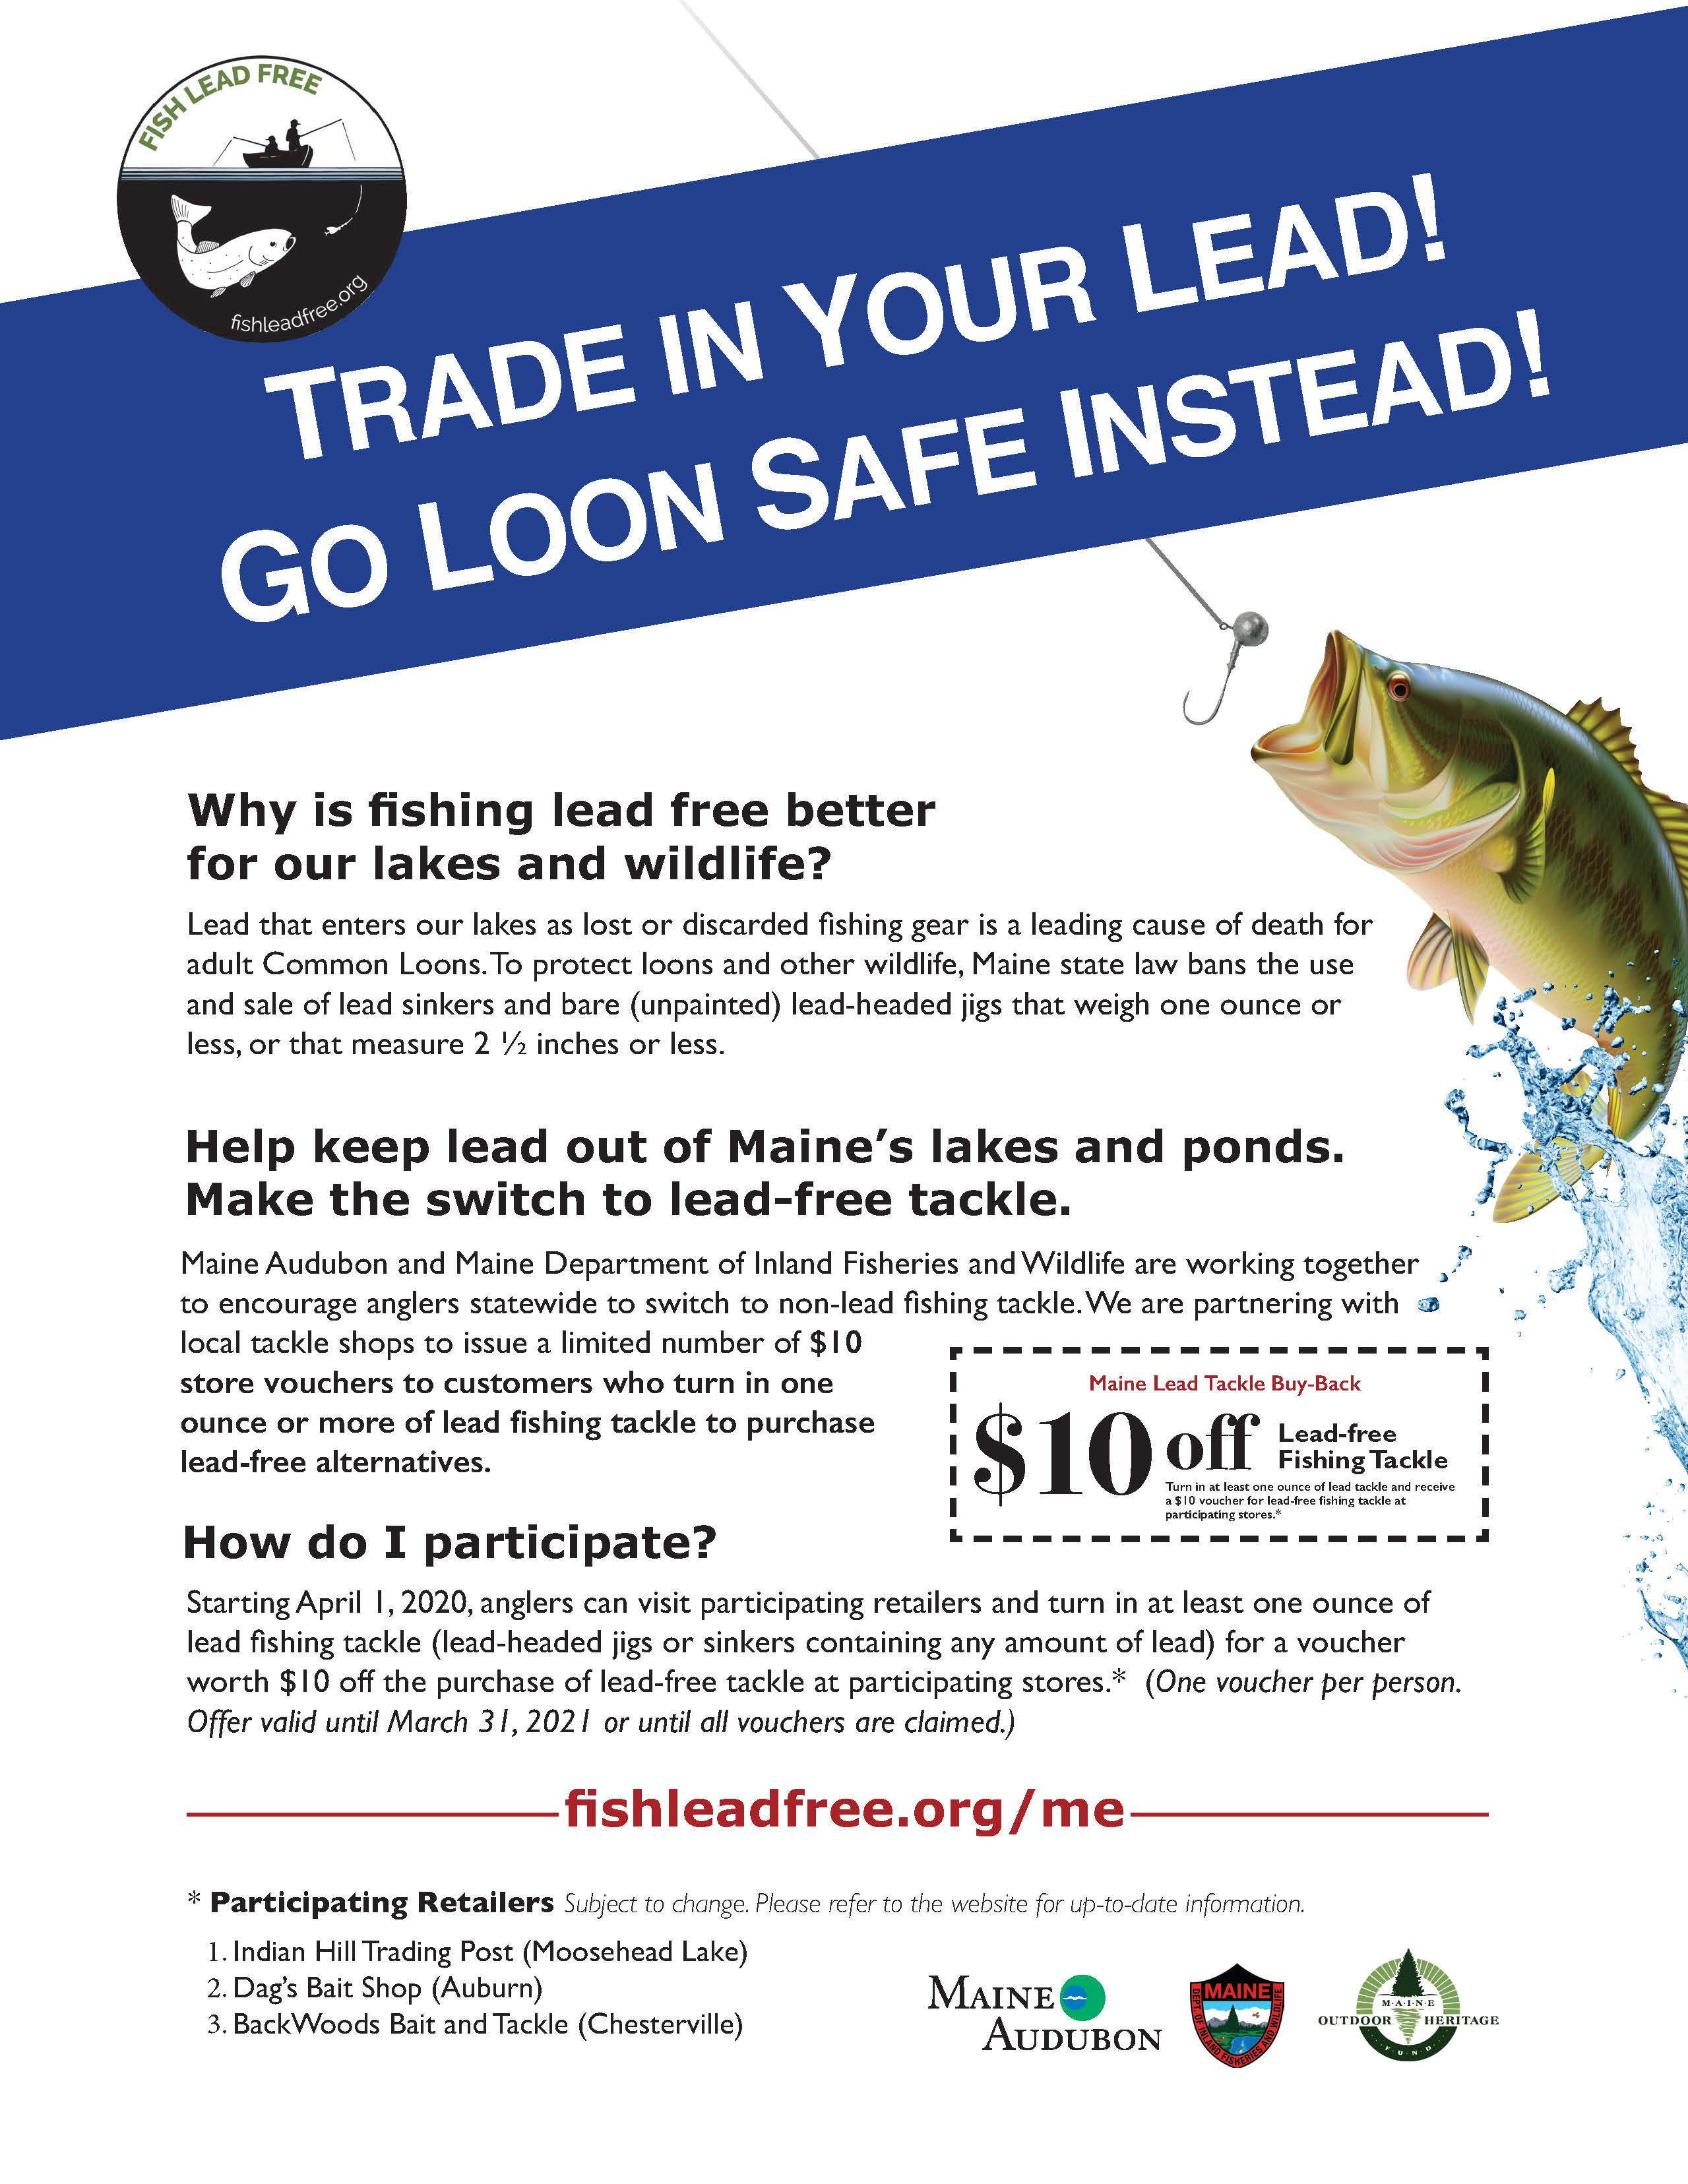 Maine Fish Lead Free